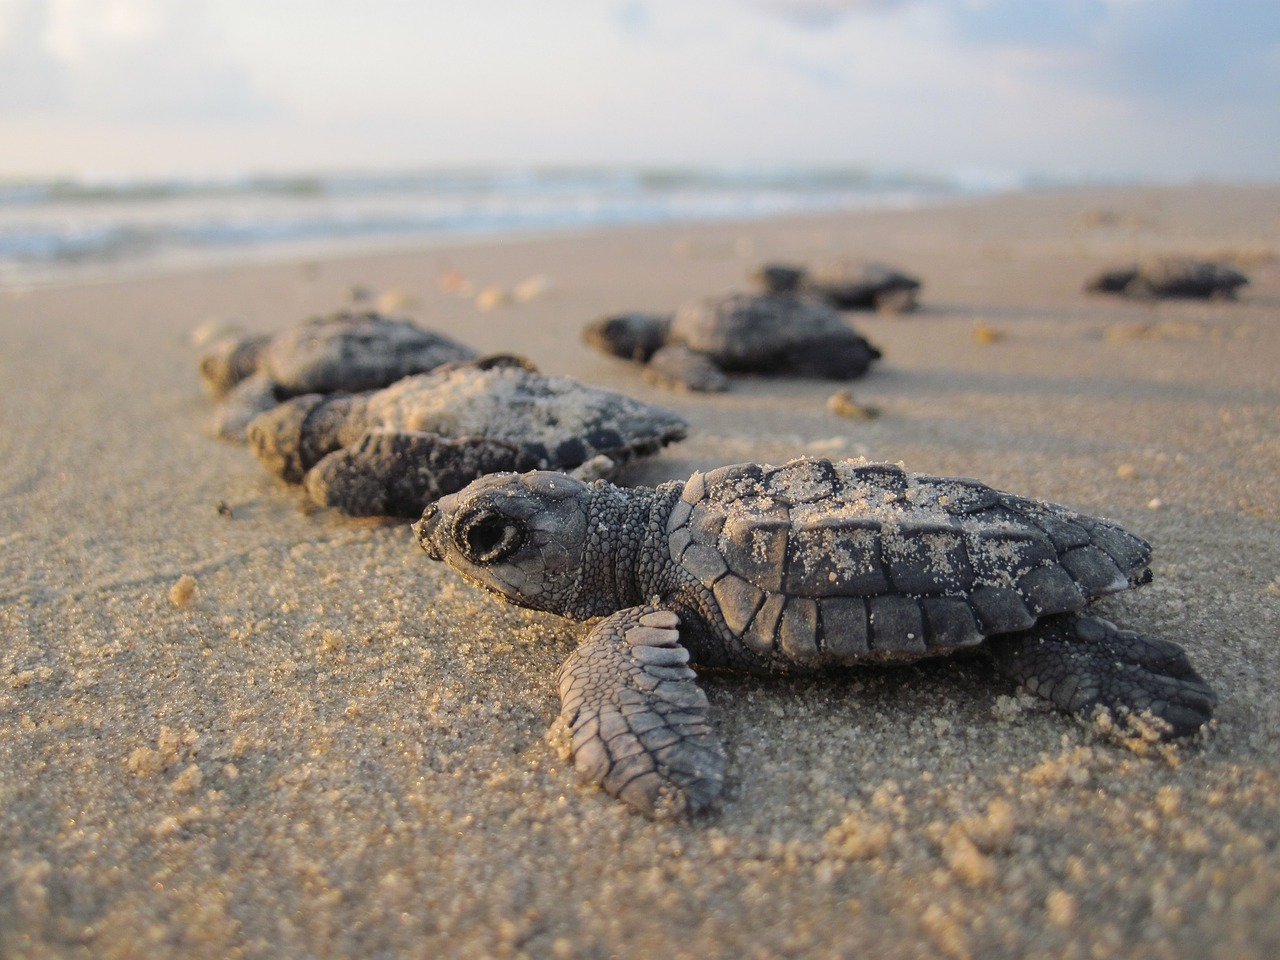 Loggerhead turtle hatchlings. Photo courtesy of Pixabay